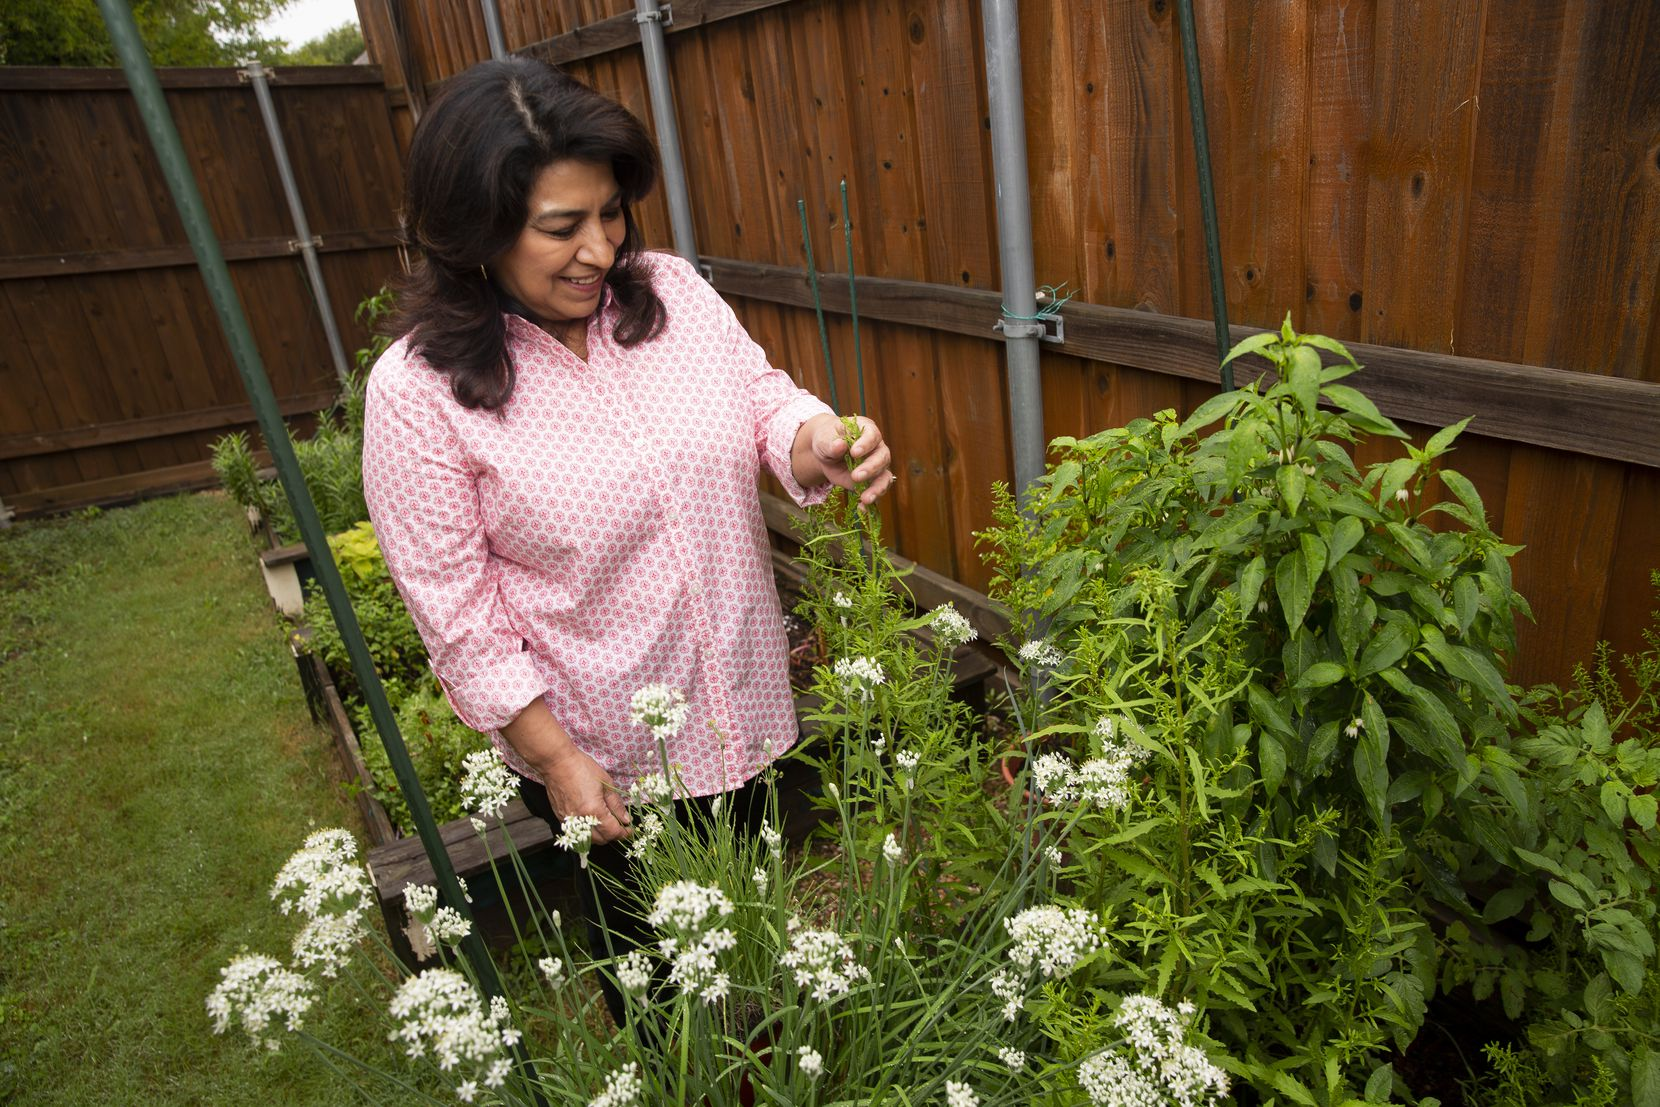 Local author Mely Martínez looks at the epazote, an aromatic herb from Mexico, growing in her backyard garden on Sept. 10, 2020, in Frisco.